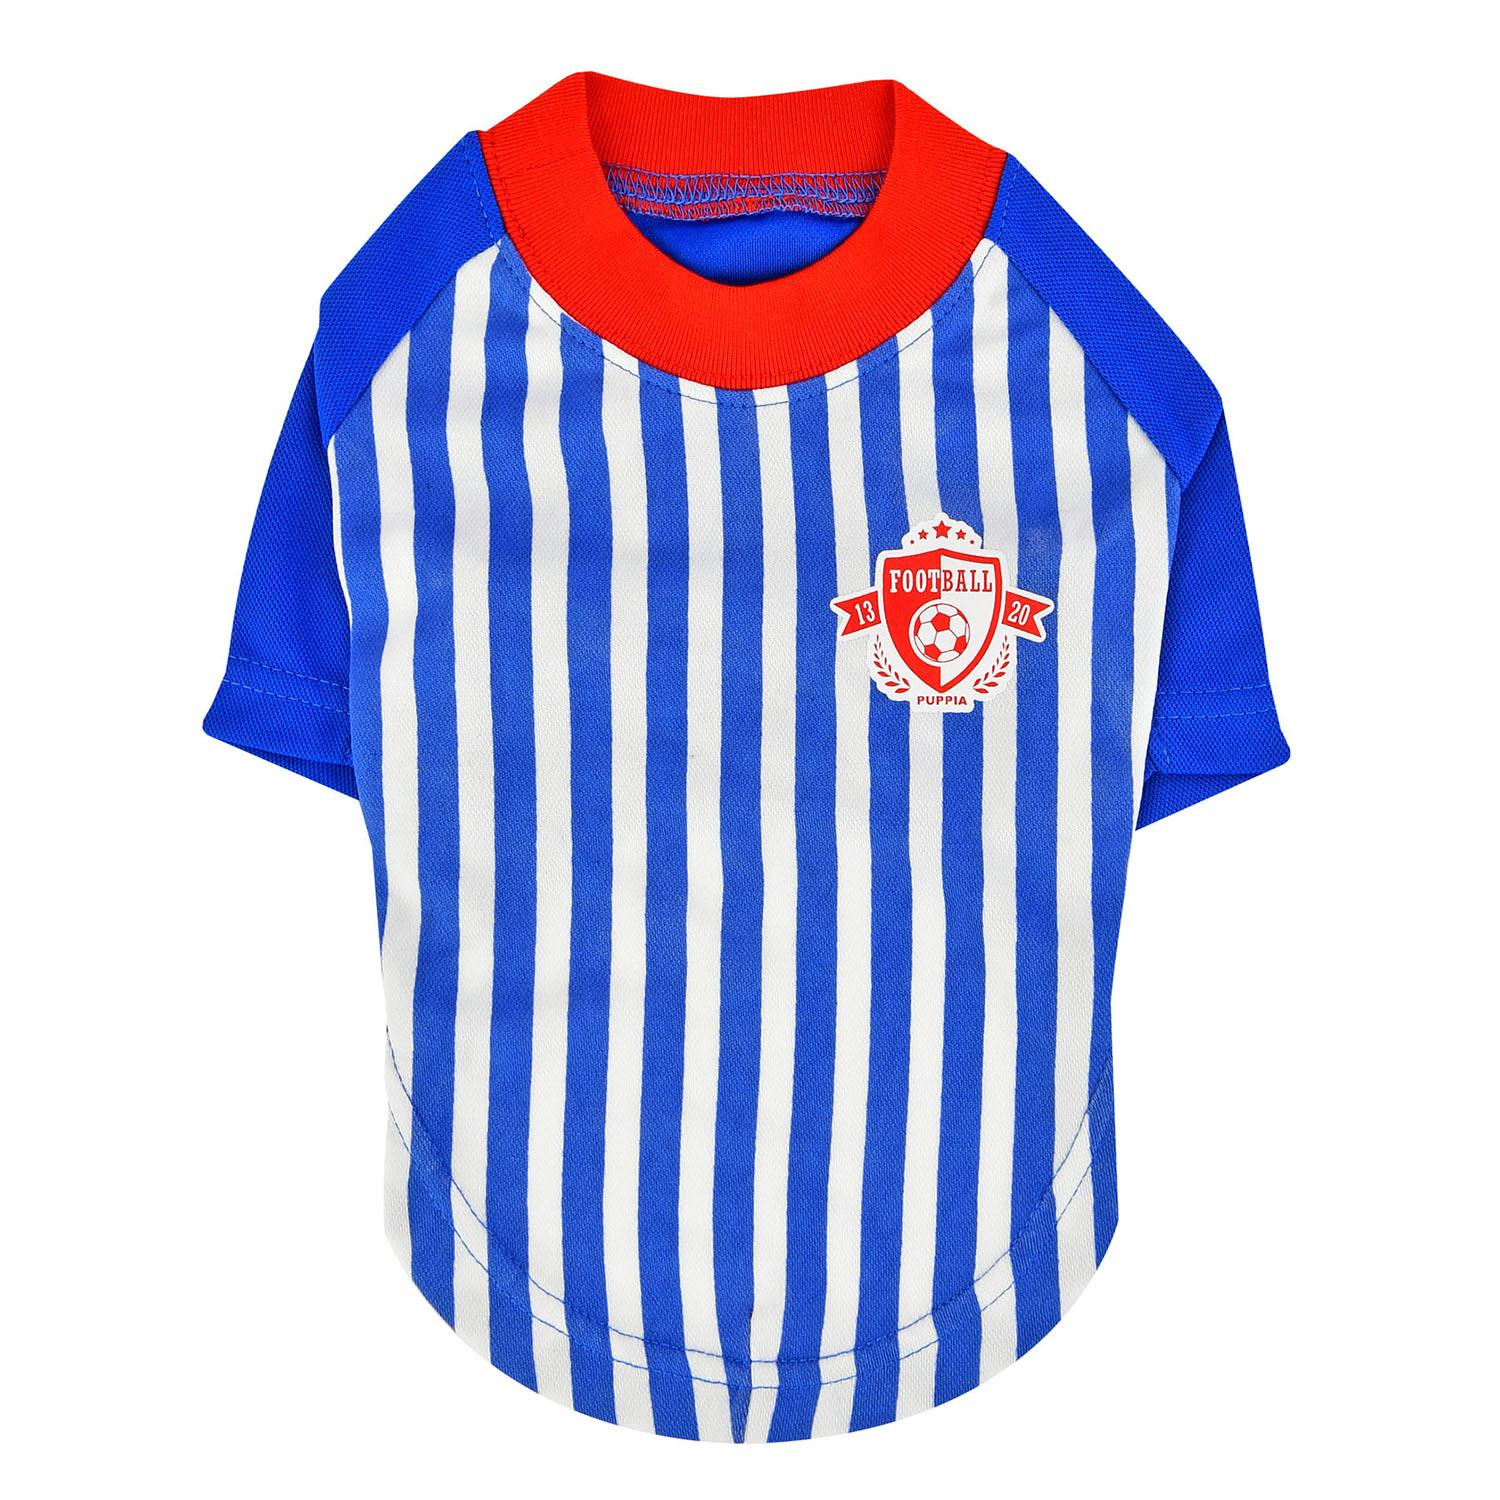 Striker Soccer Dog Jersey by Puppia - Royal Blue